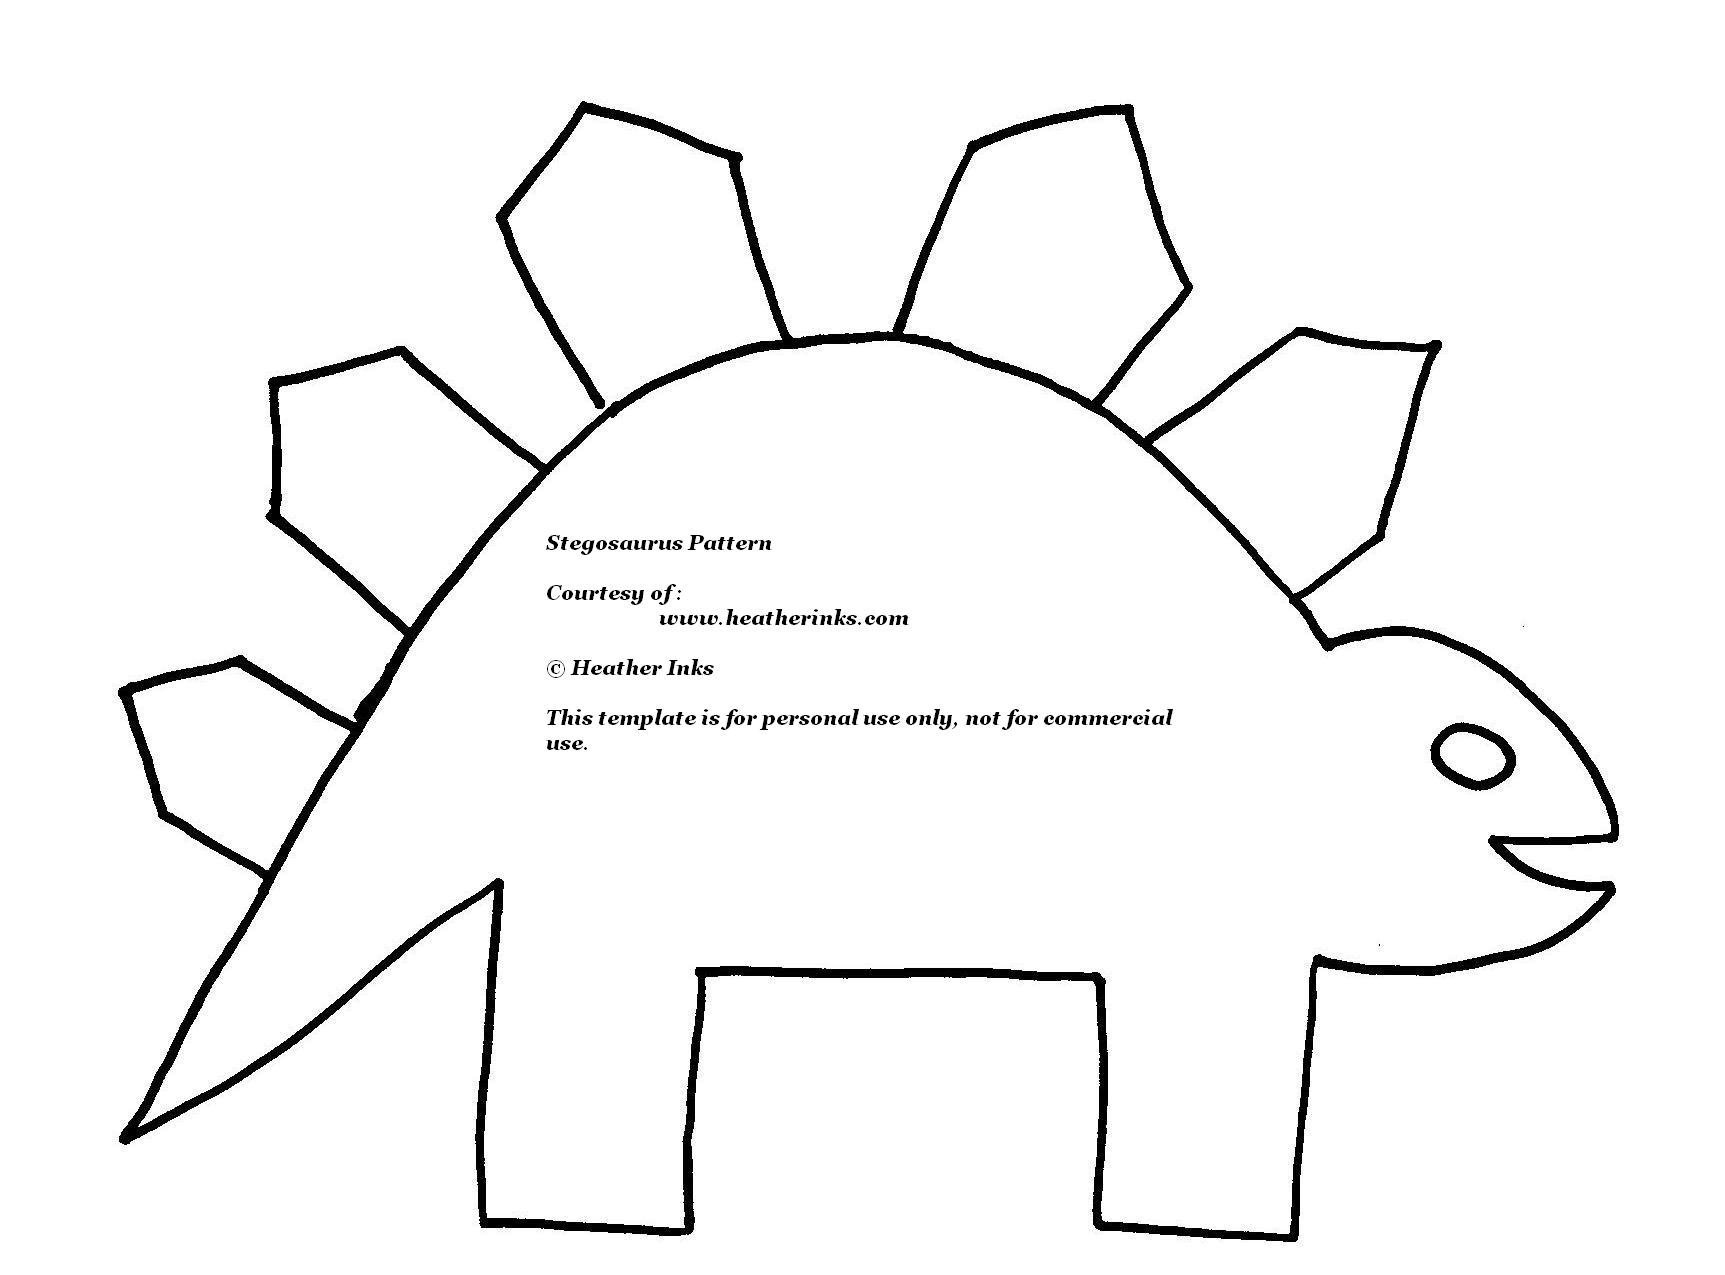 76 images of Stegosaurus Outline . You can use these free cliparts for ...